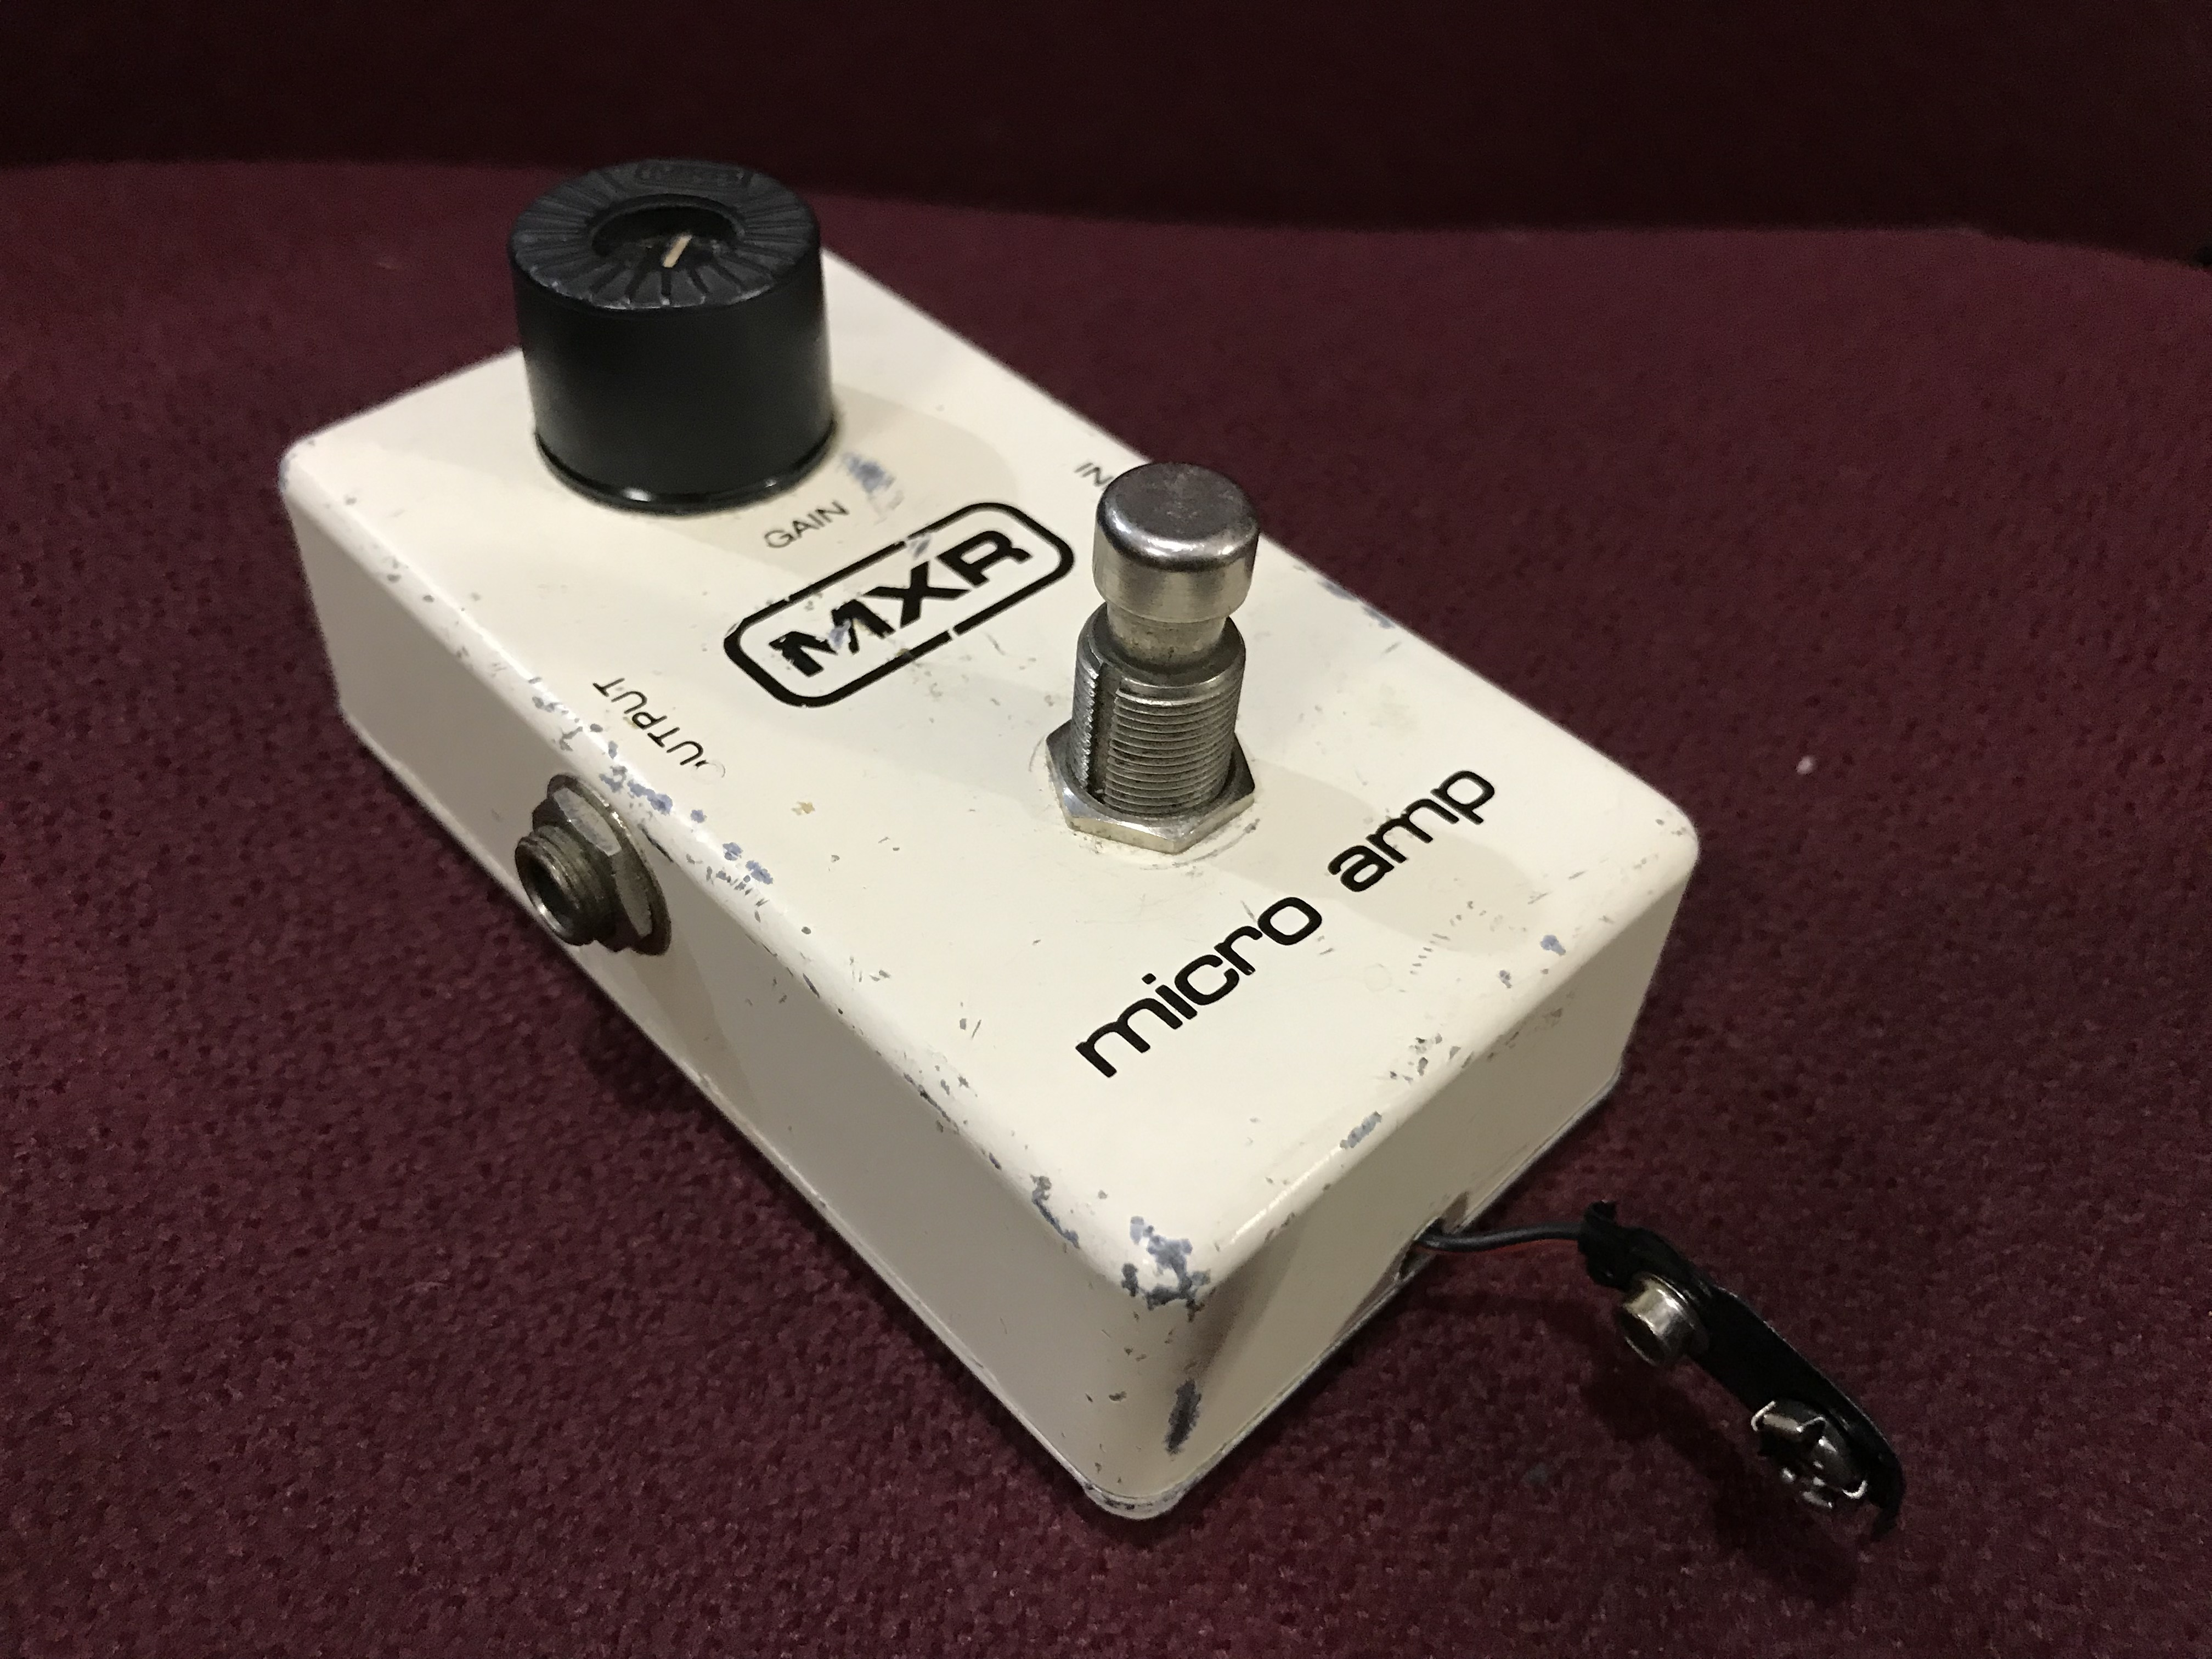 MXR MICRO AMP 1981 M133 Non-LED Vintage Booster Effect Pedal